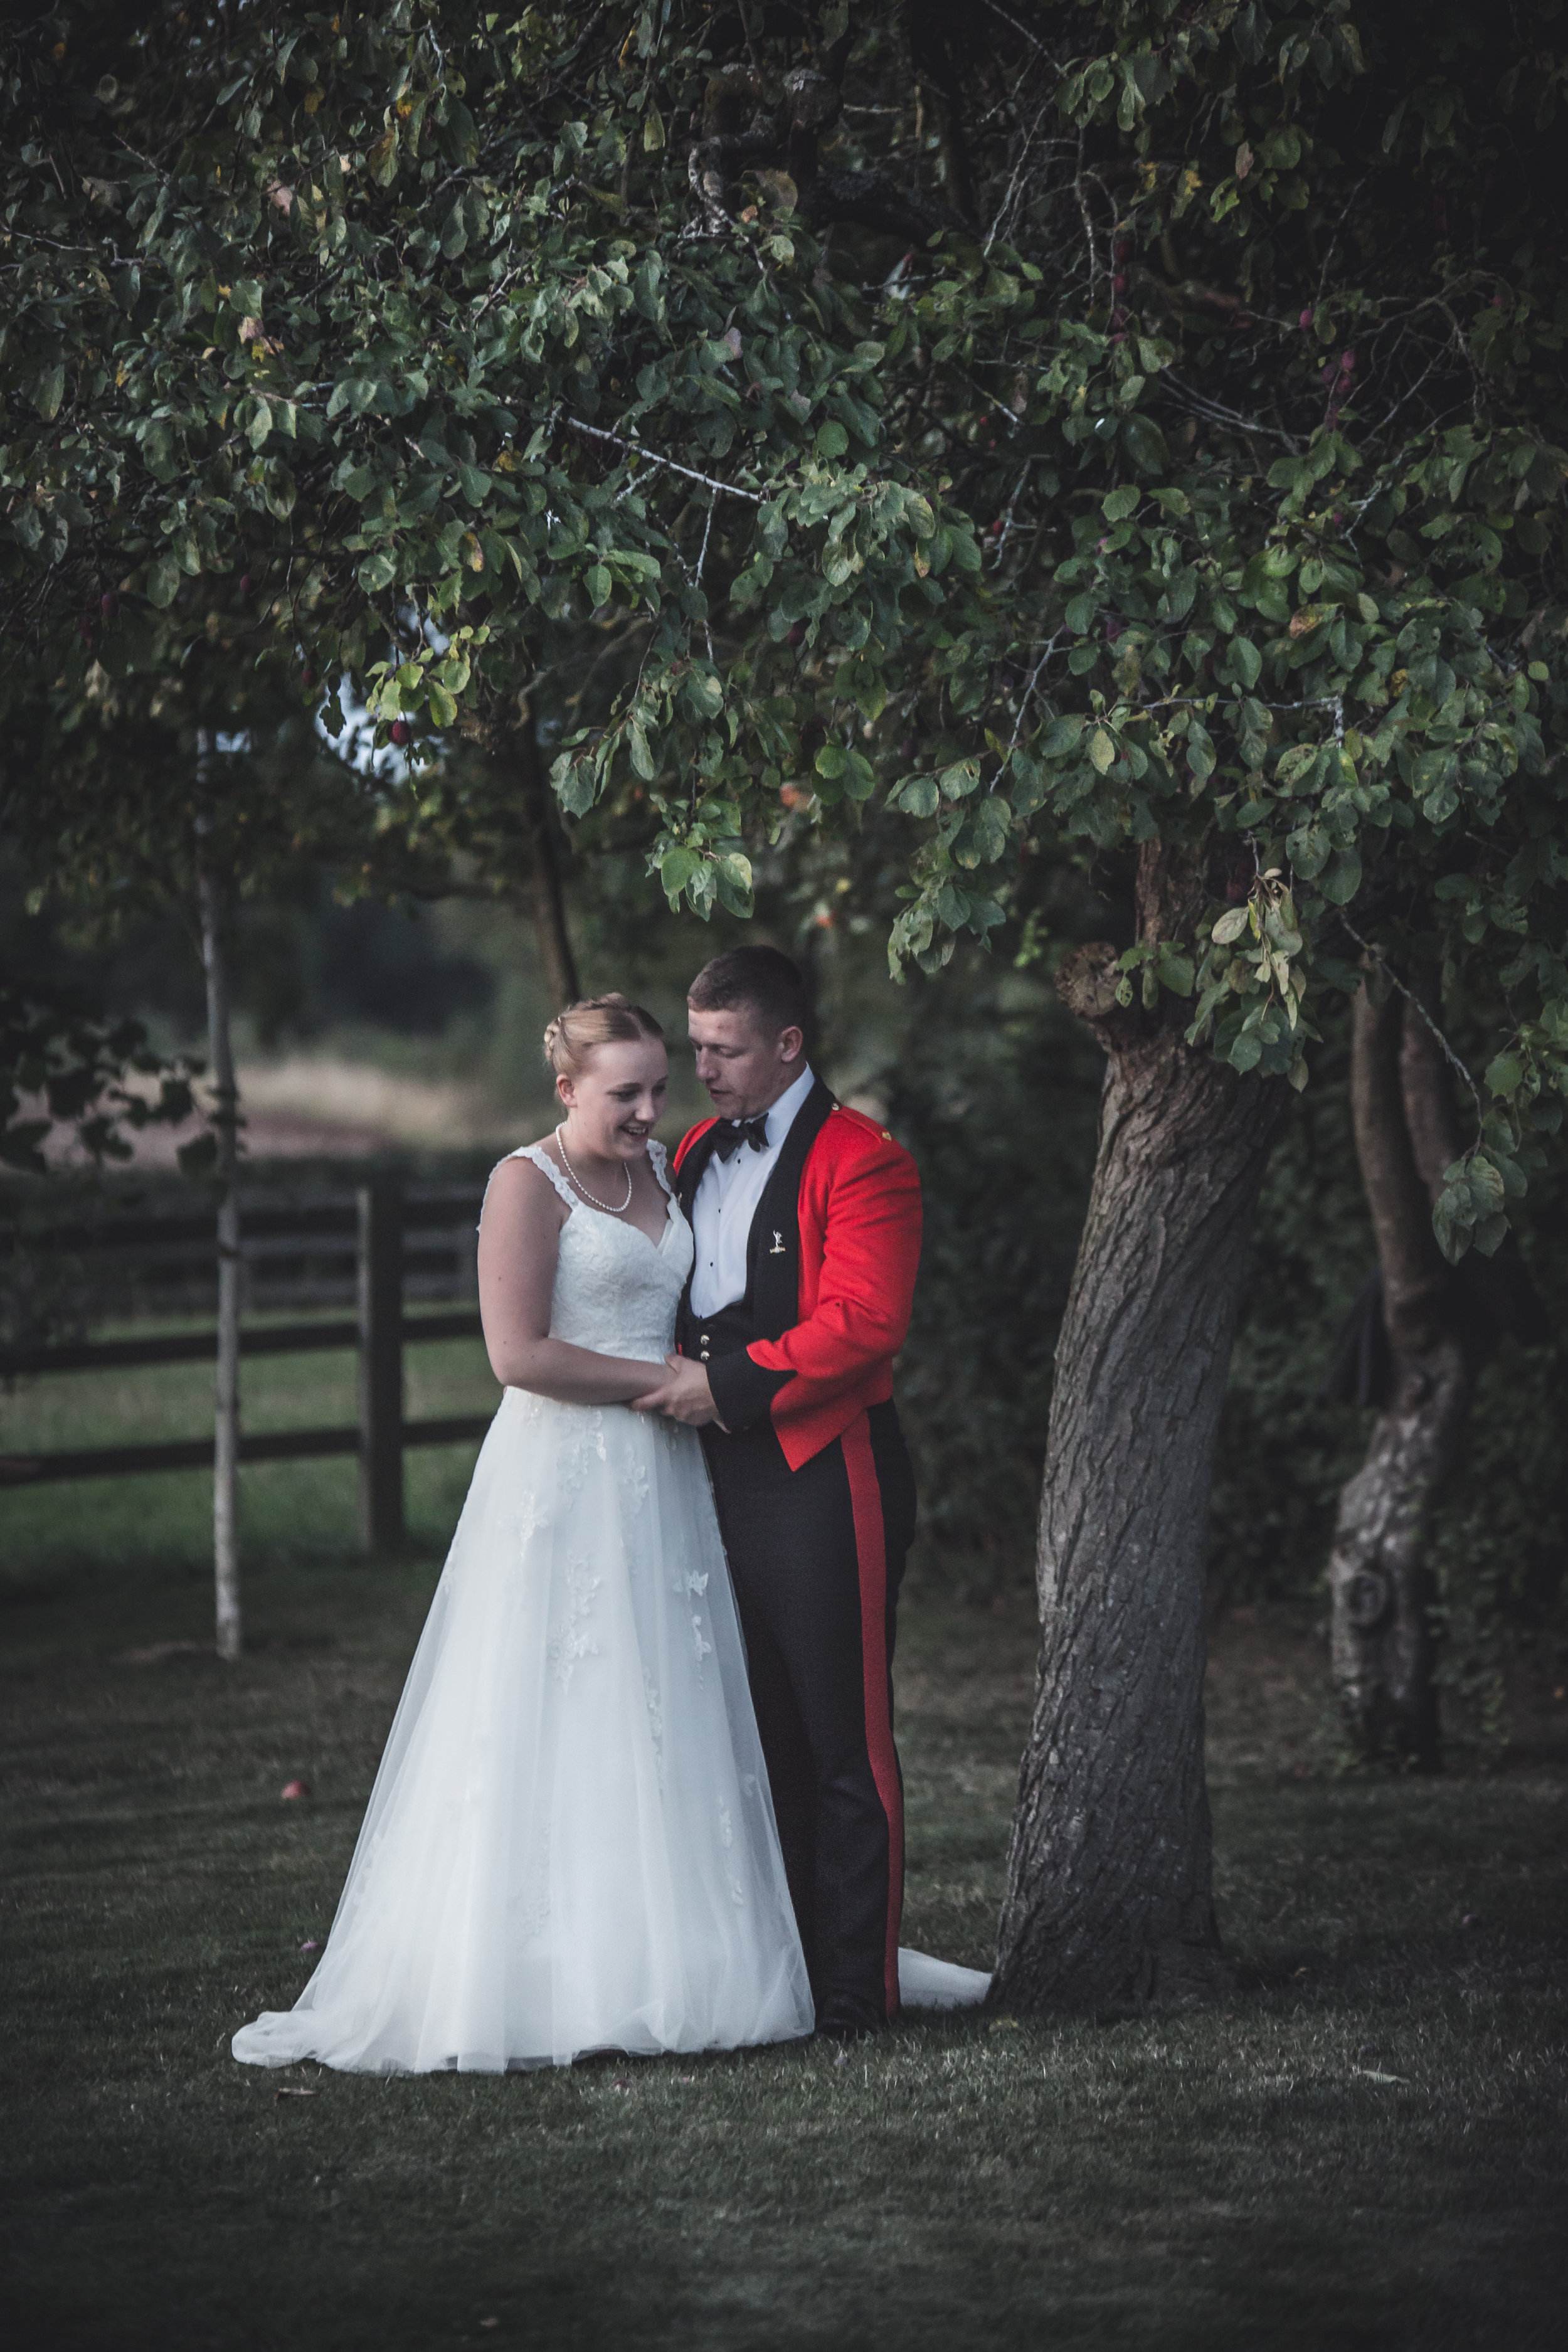 Aimee and Andy share a moment together outside Manor Hill House, Andy is wearing his formal military suit, and Aimee is wearing a white wedding dress.